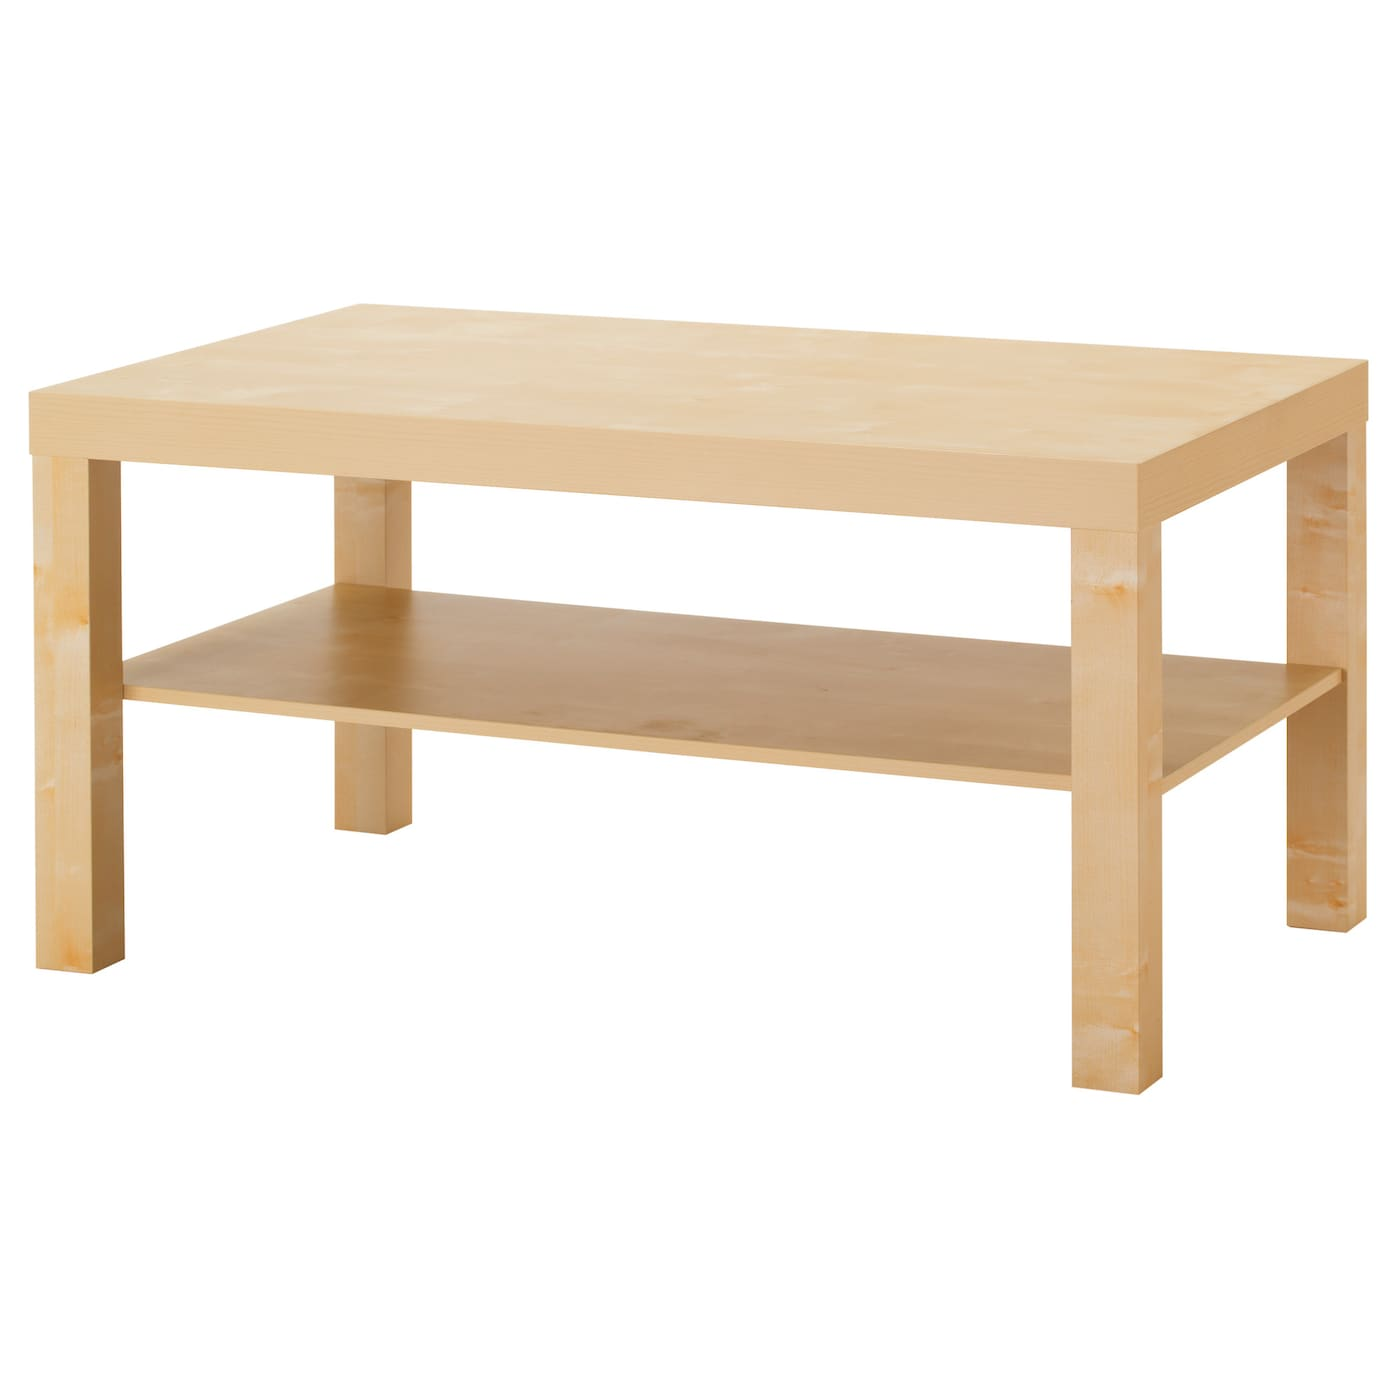 Lack coffee table birch effect 90x55 cm ikea Ikea coffee tables and end tables